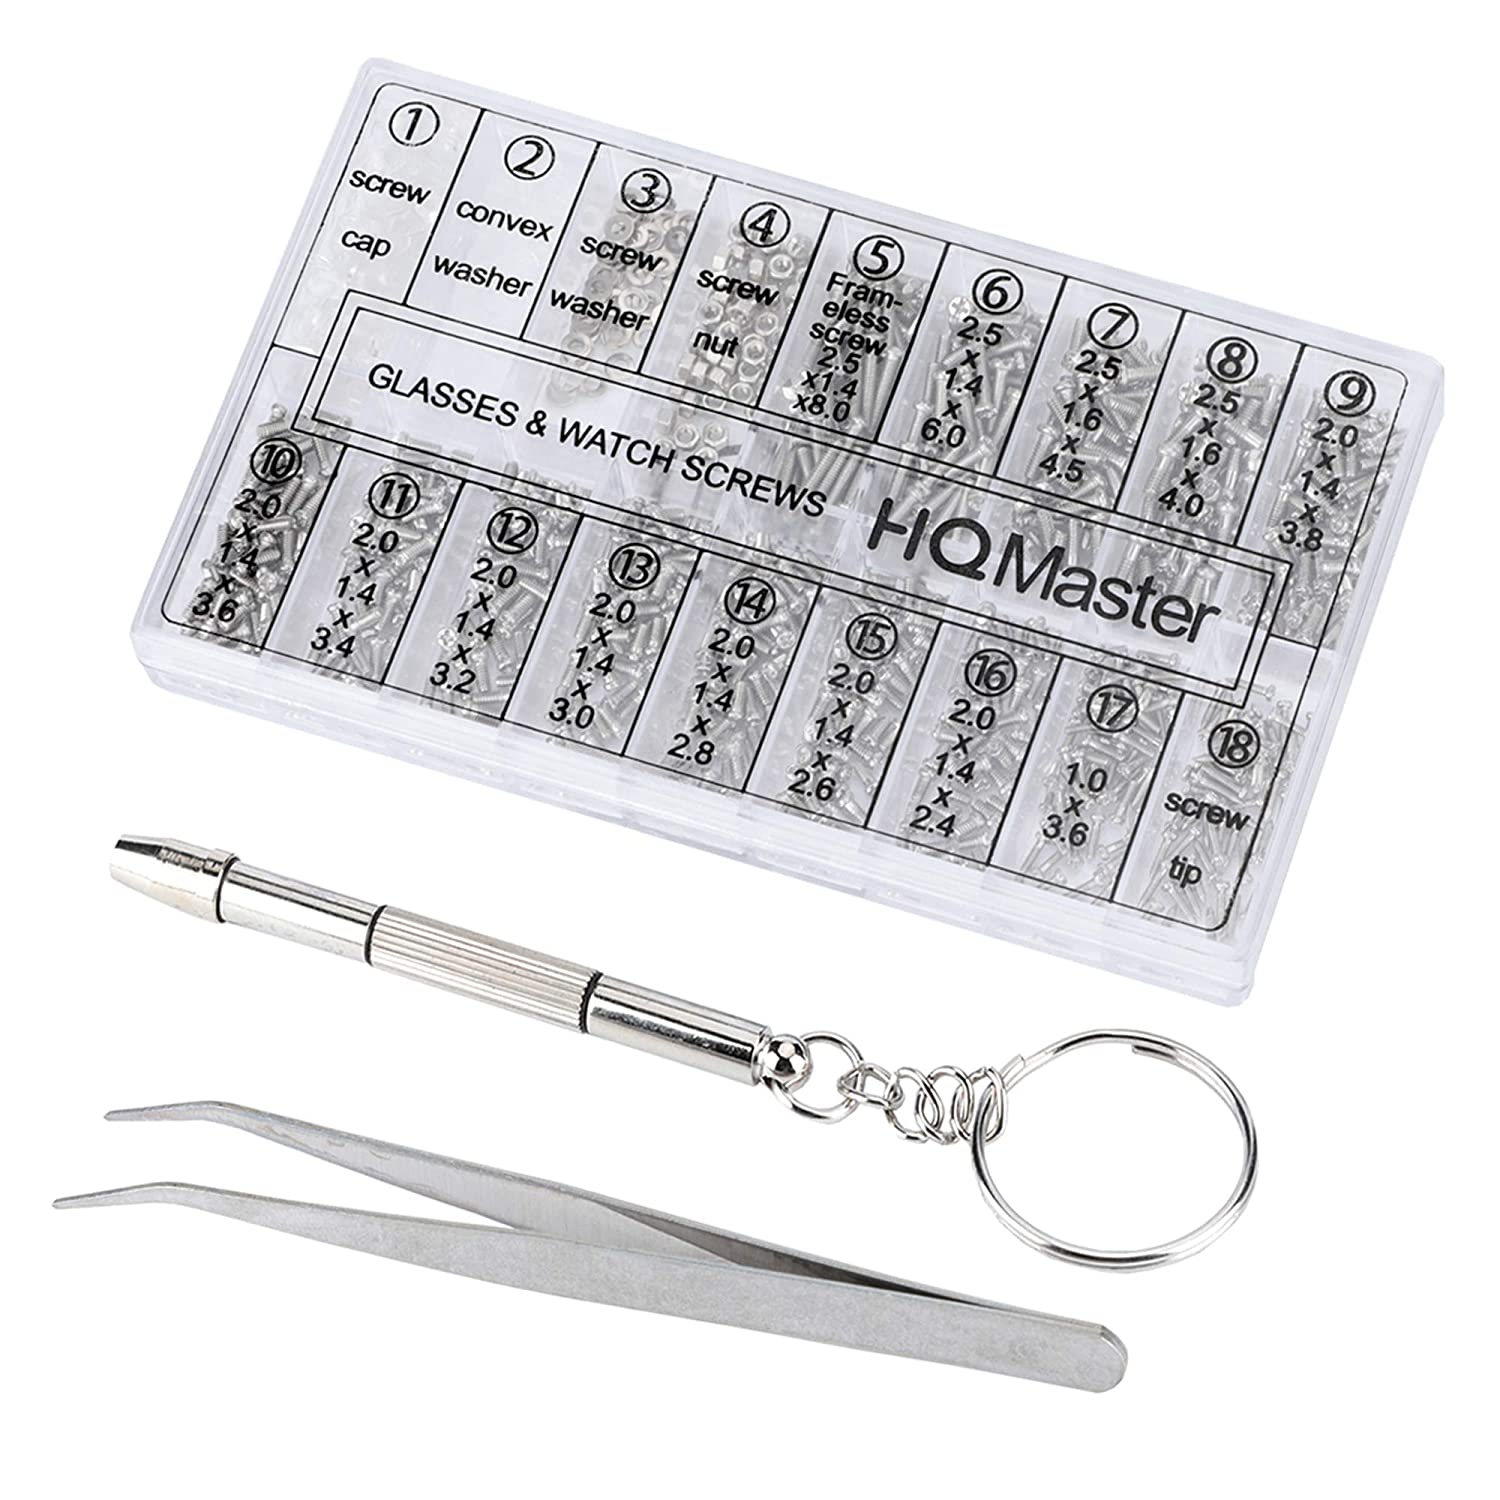 1000Pcs//Set Tiny Watches Screws Fit For Small Micro Eye glasses Repair Tools